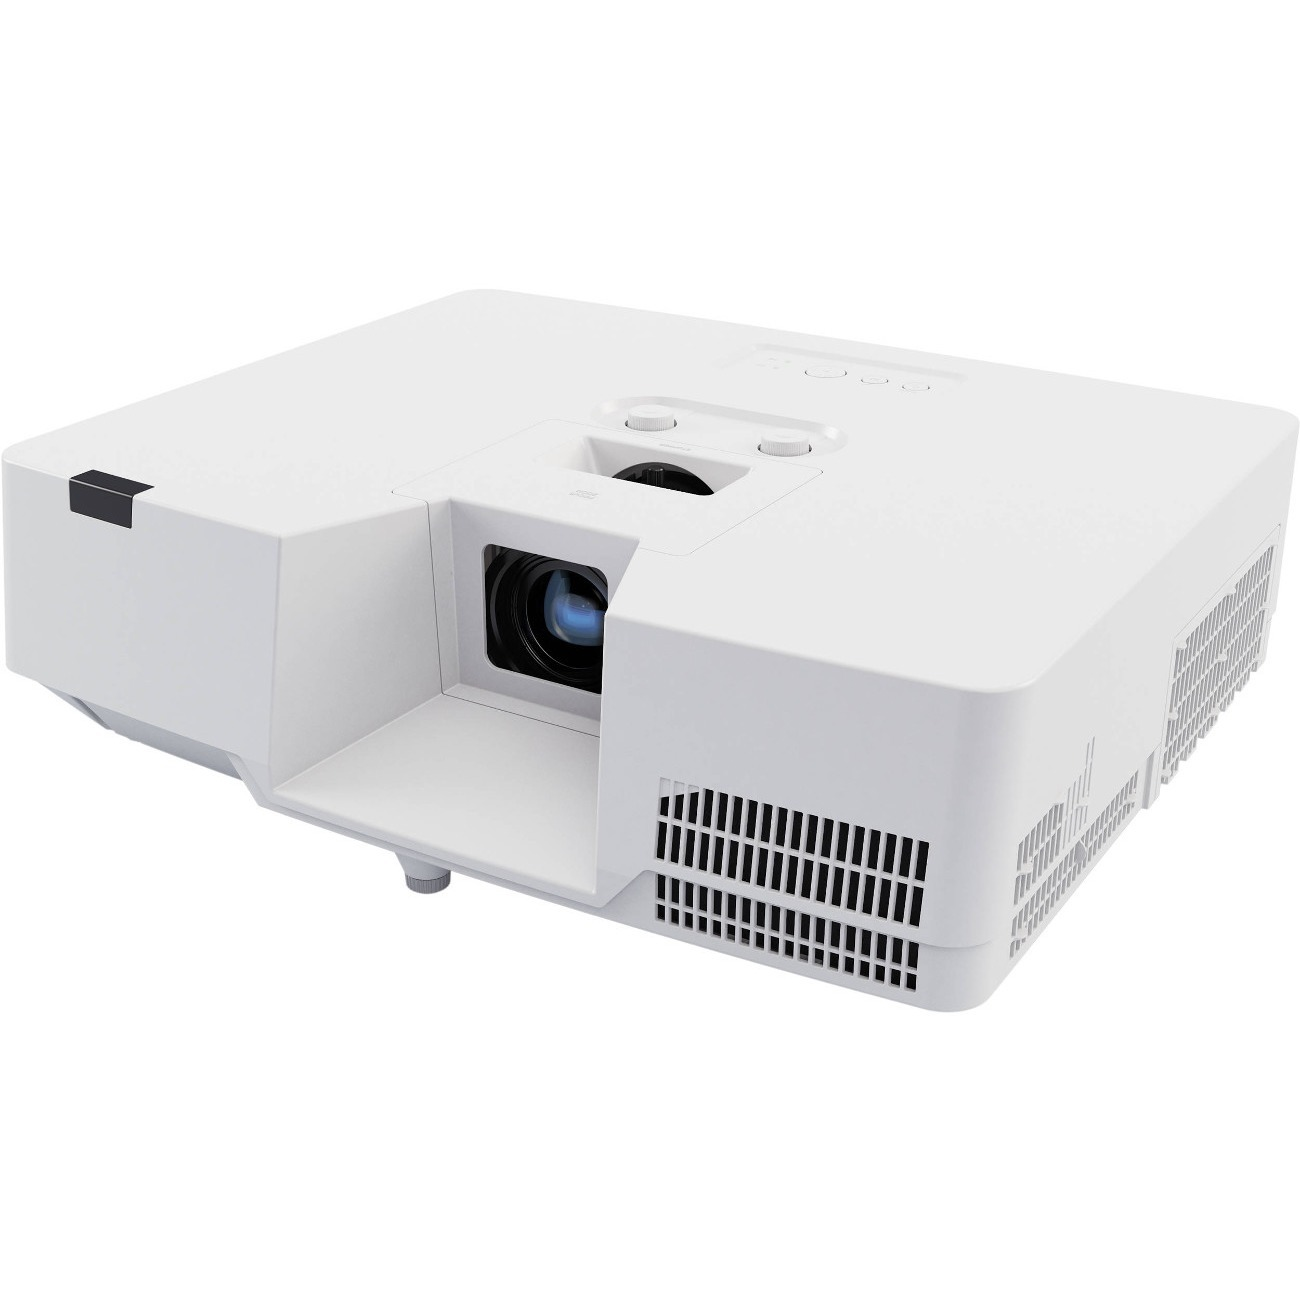 Christie Digital LWU530-APS LCD Projector - White_subImage_1